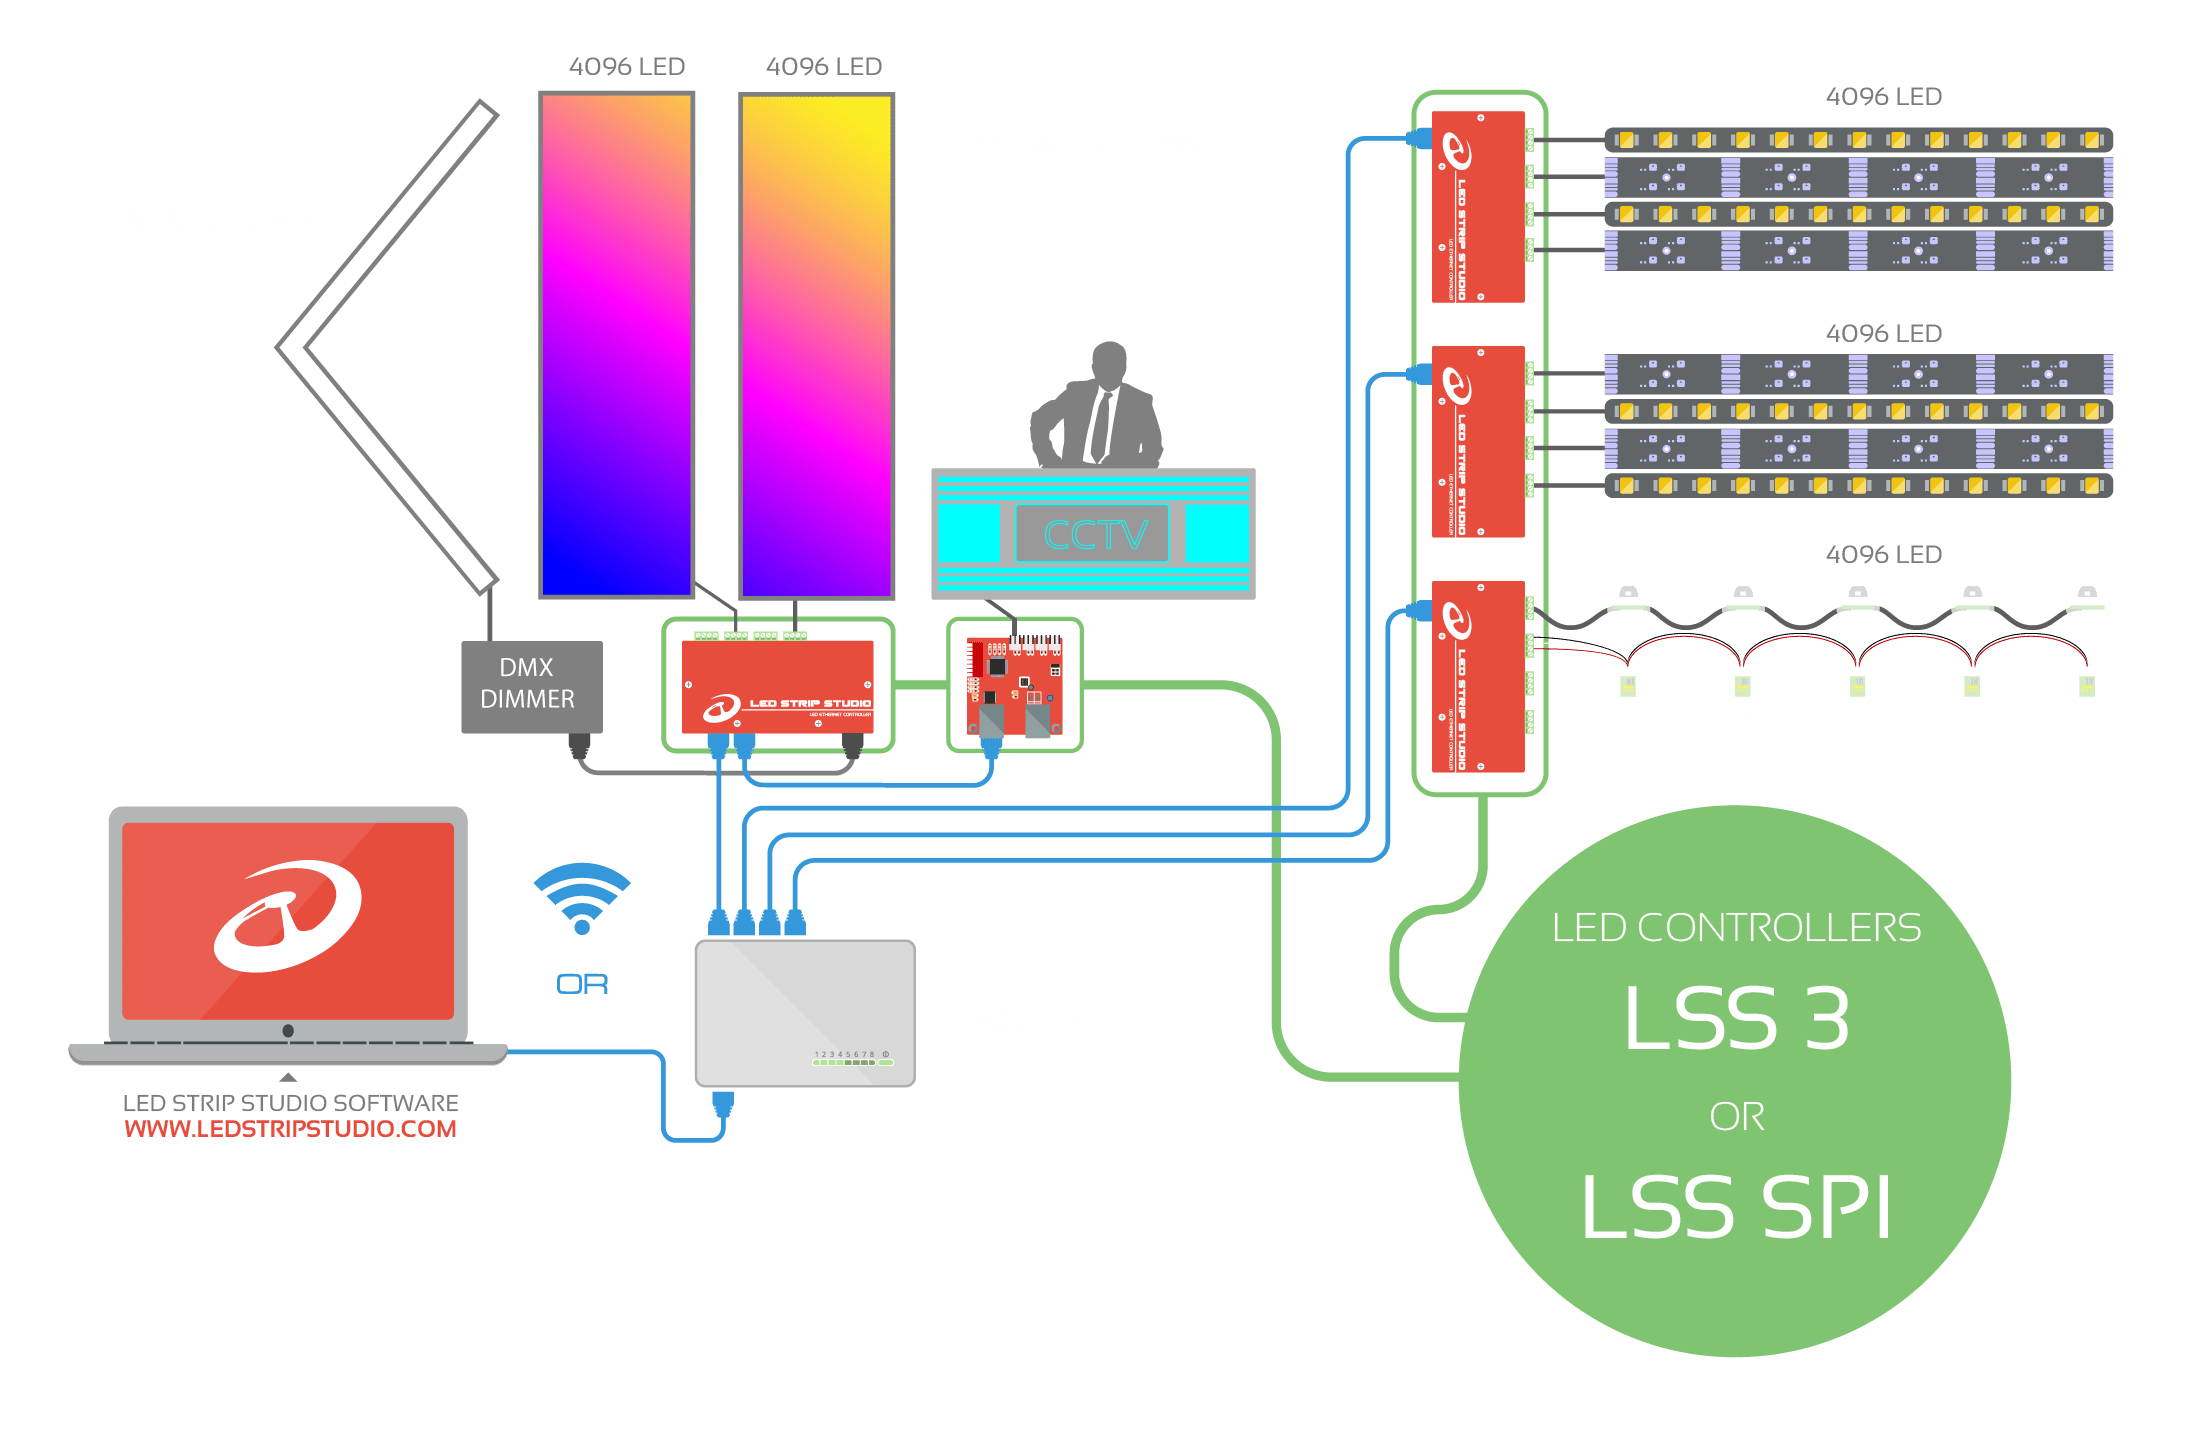 LED Strip Studio control system scheme